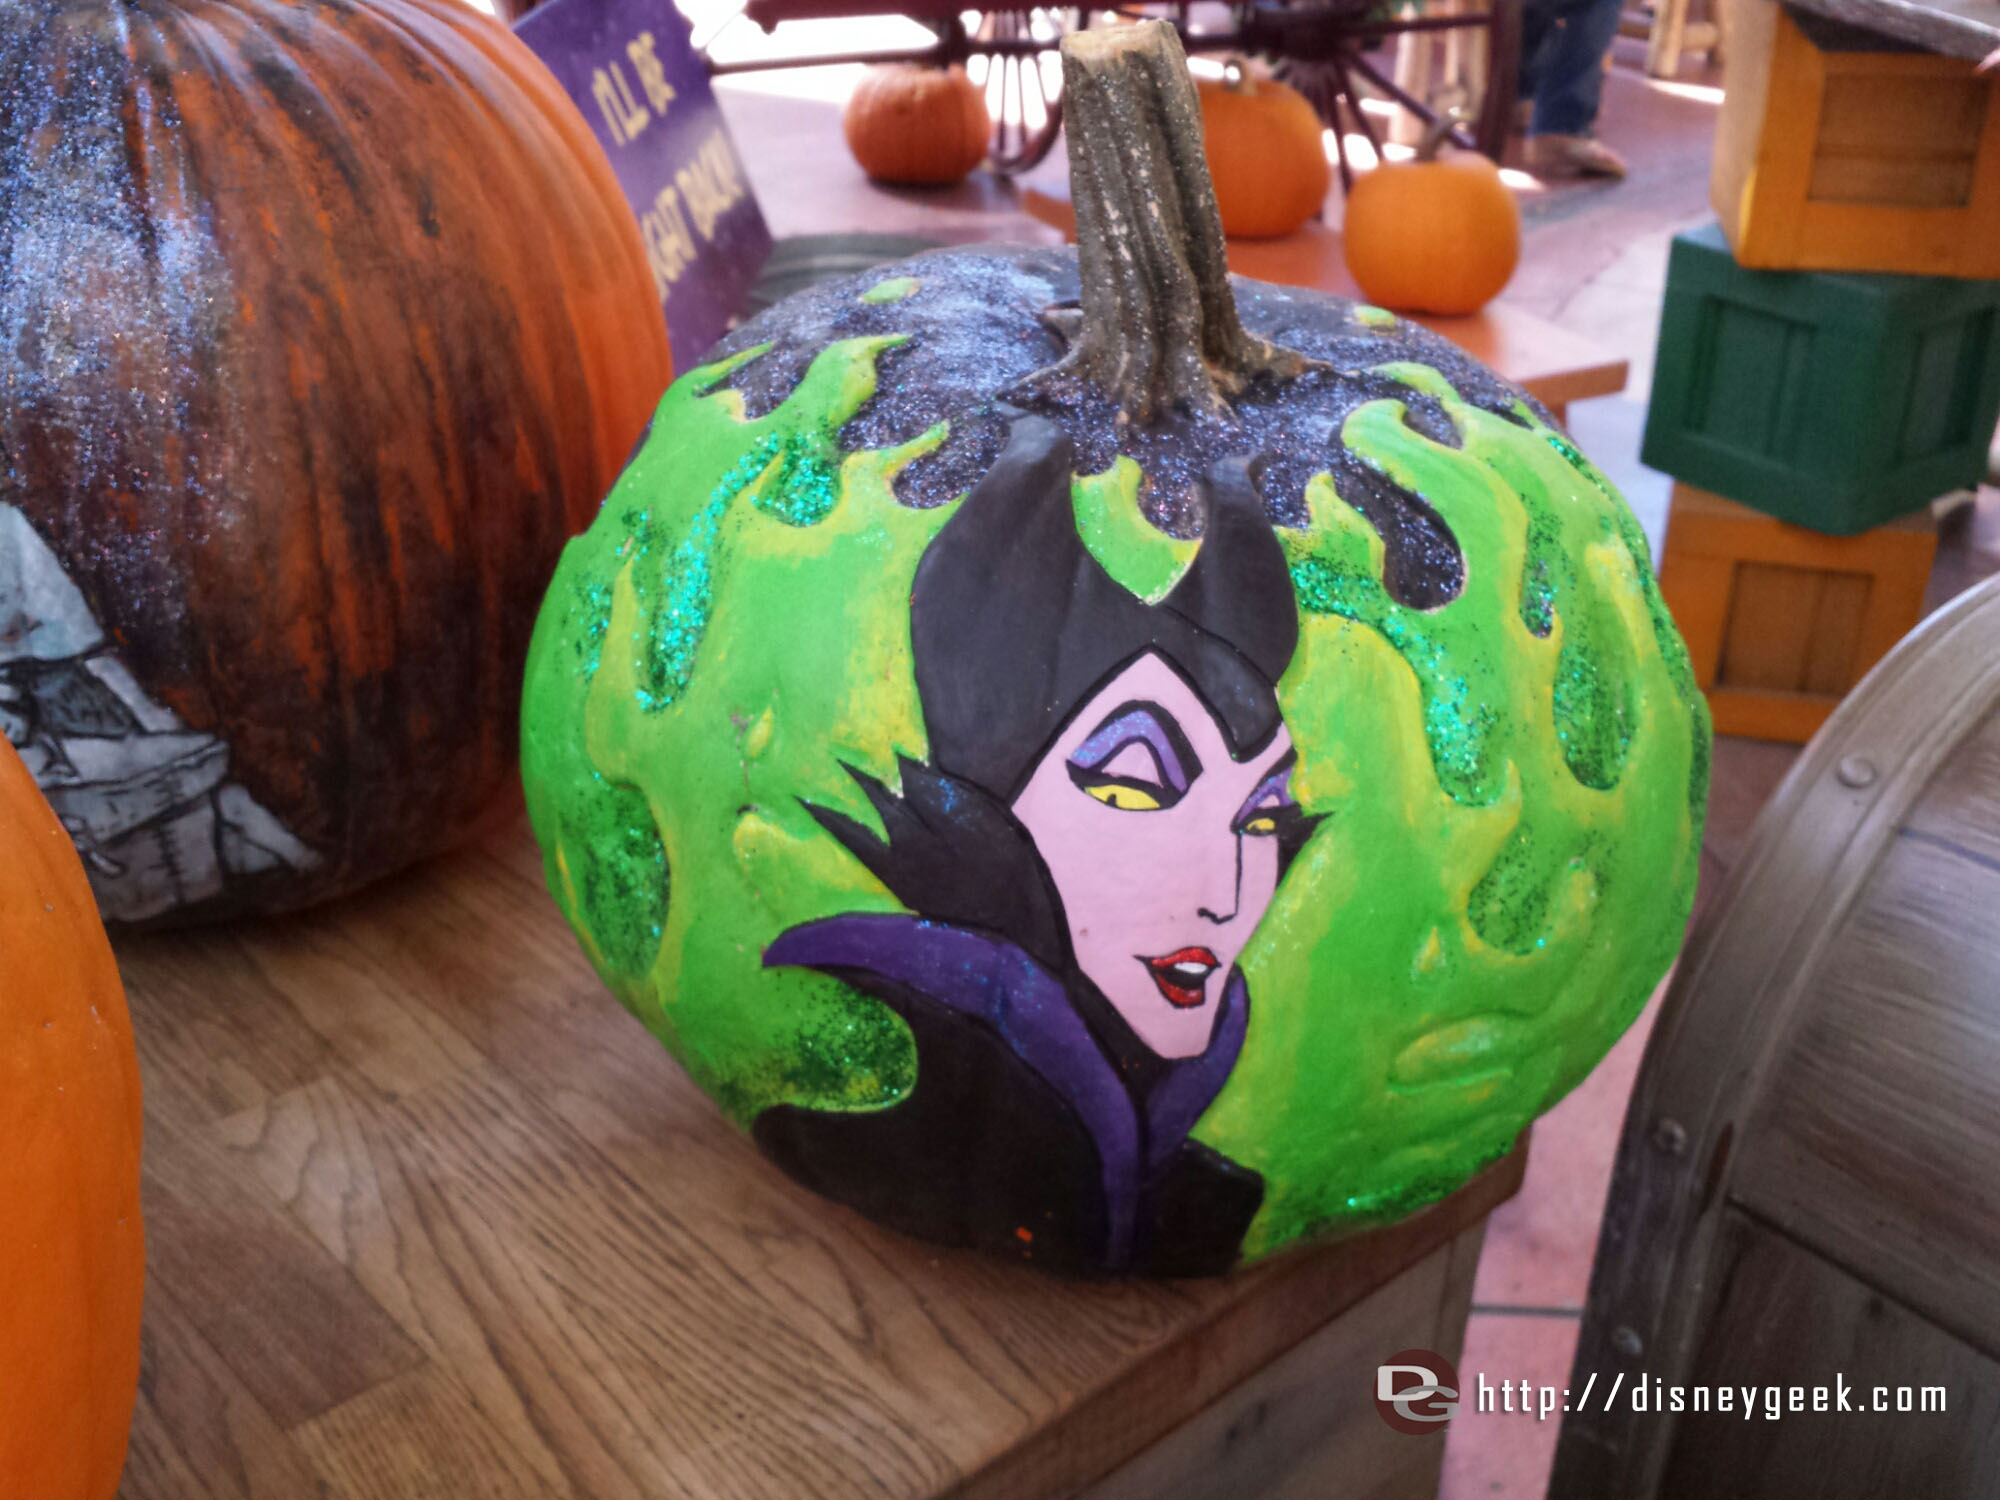 Maleficent pumpkin #HalloweenTime #Disneyland